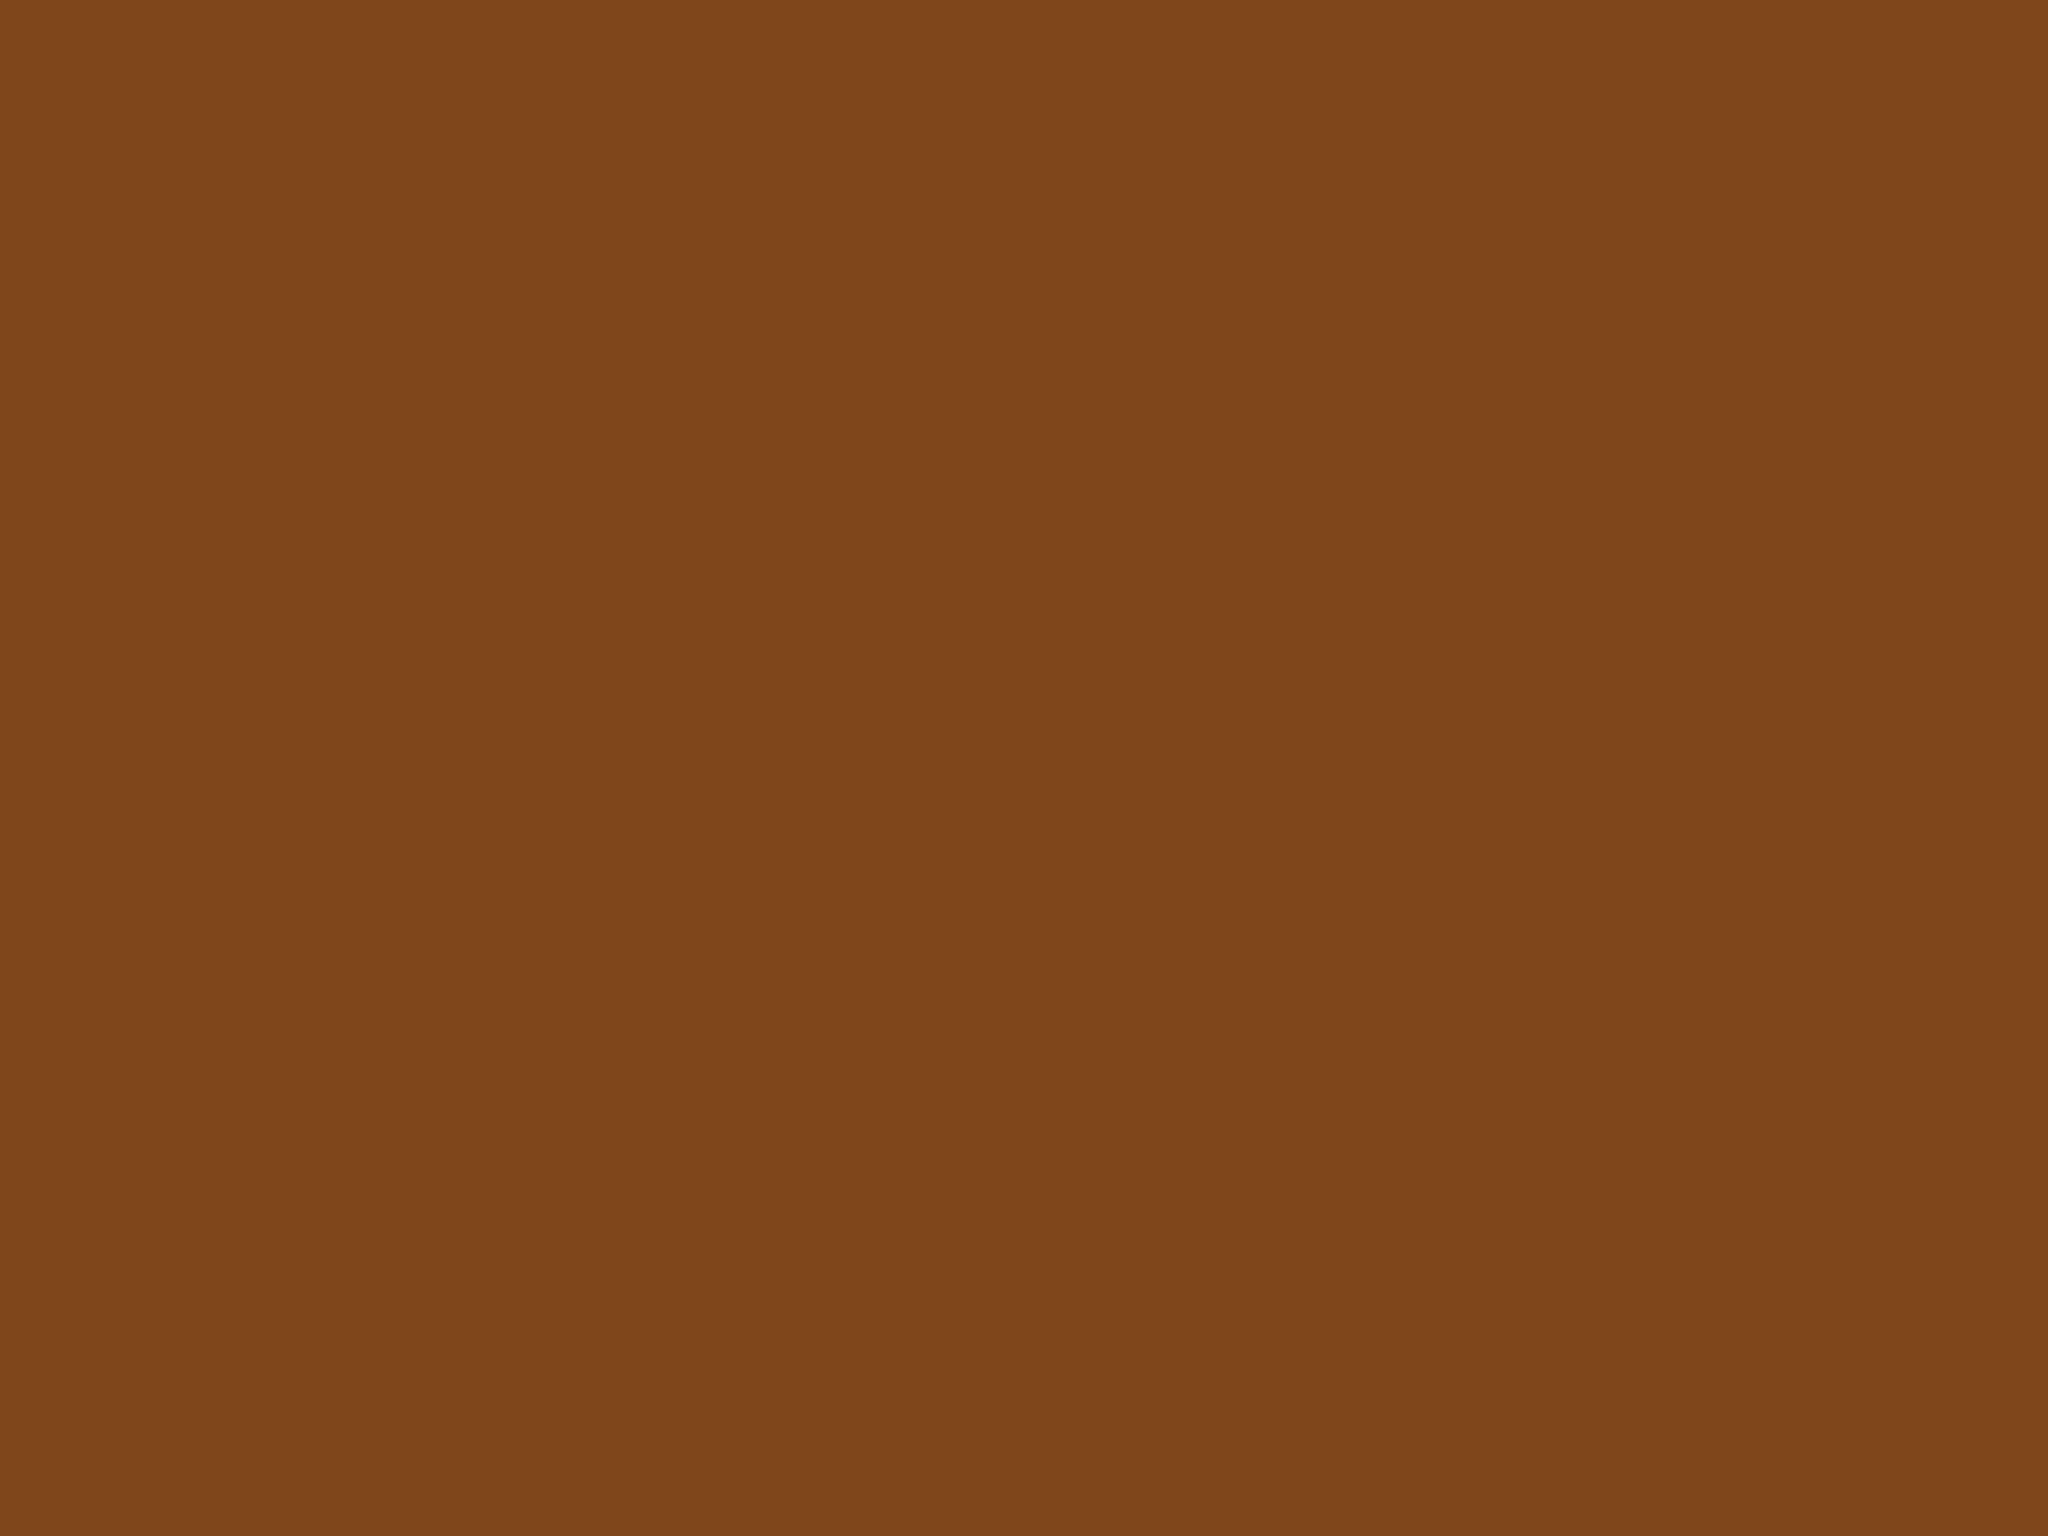 2048x1536 Russet Solid Color Background